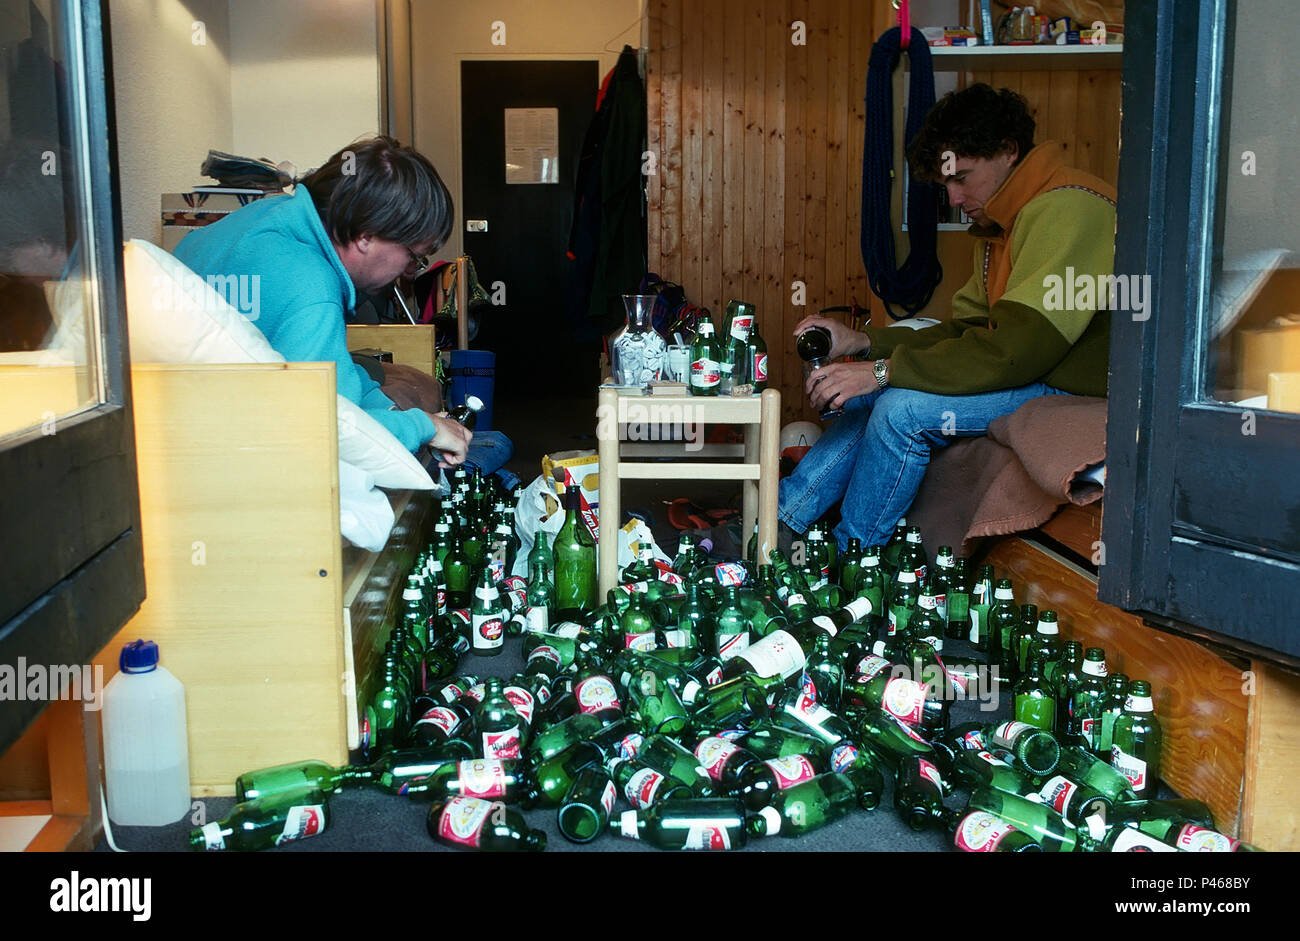 A quiet night in - two young men opening a beer bottle each, surrounded by empty bottles - Stock Image